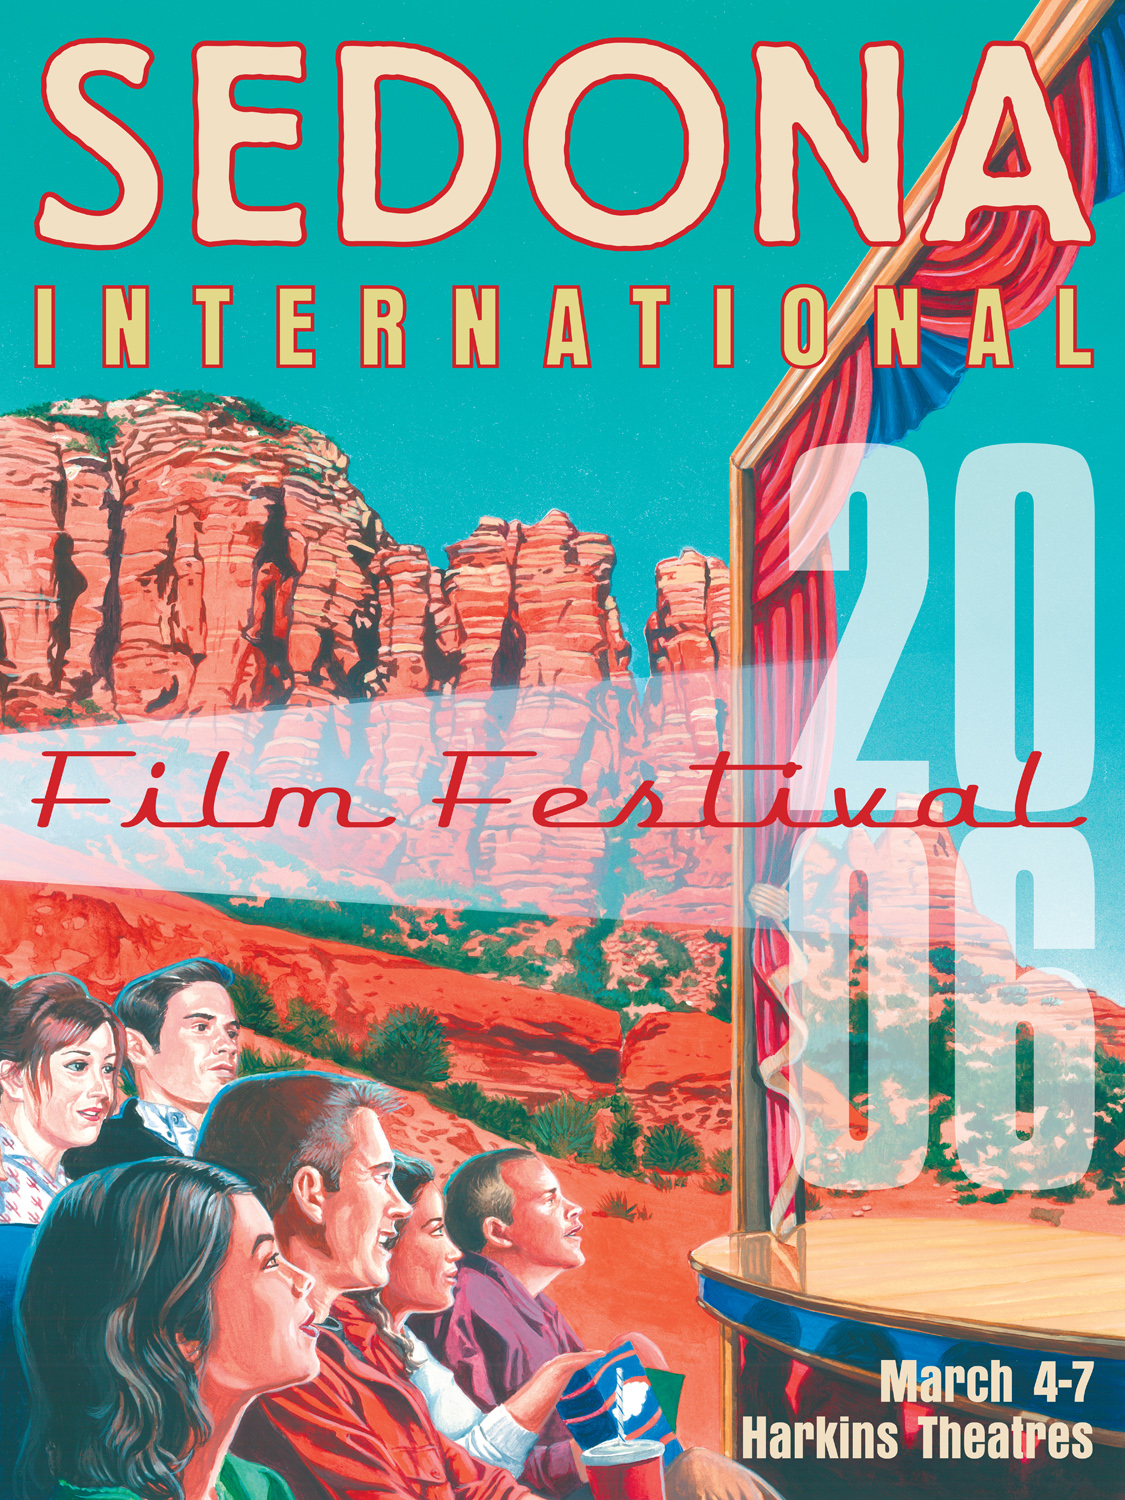 2006 Sedona Film Festival Poster. acrylics, plus Illustrator and Photoshop.